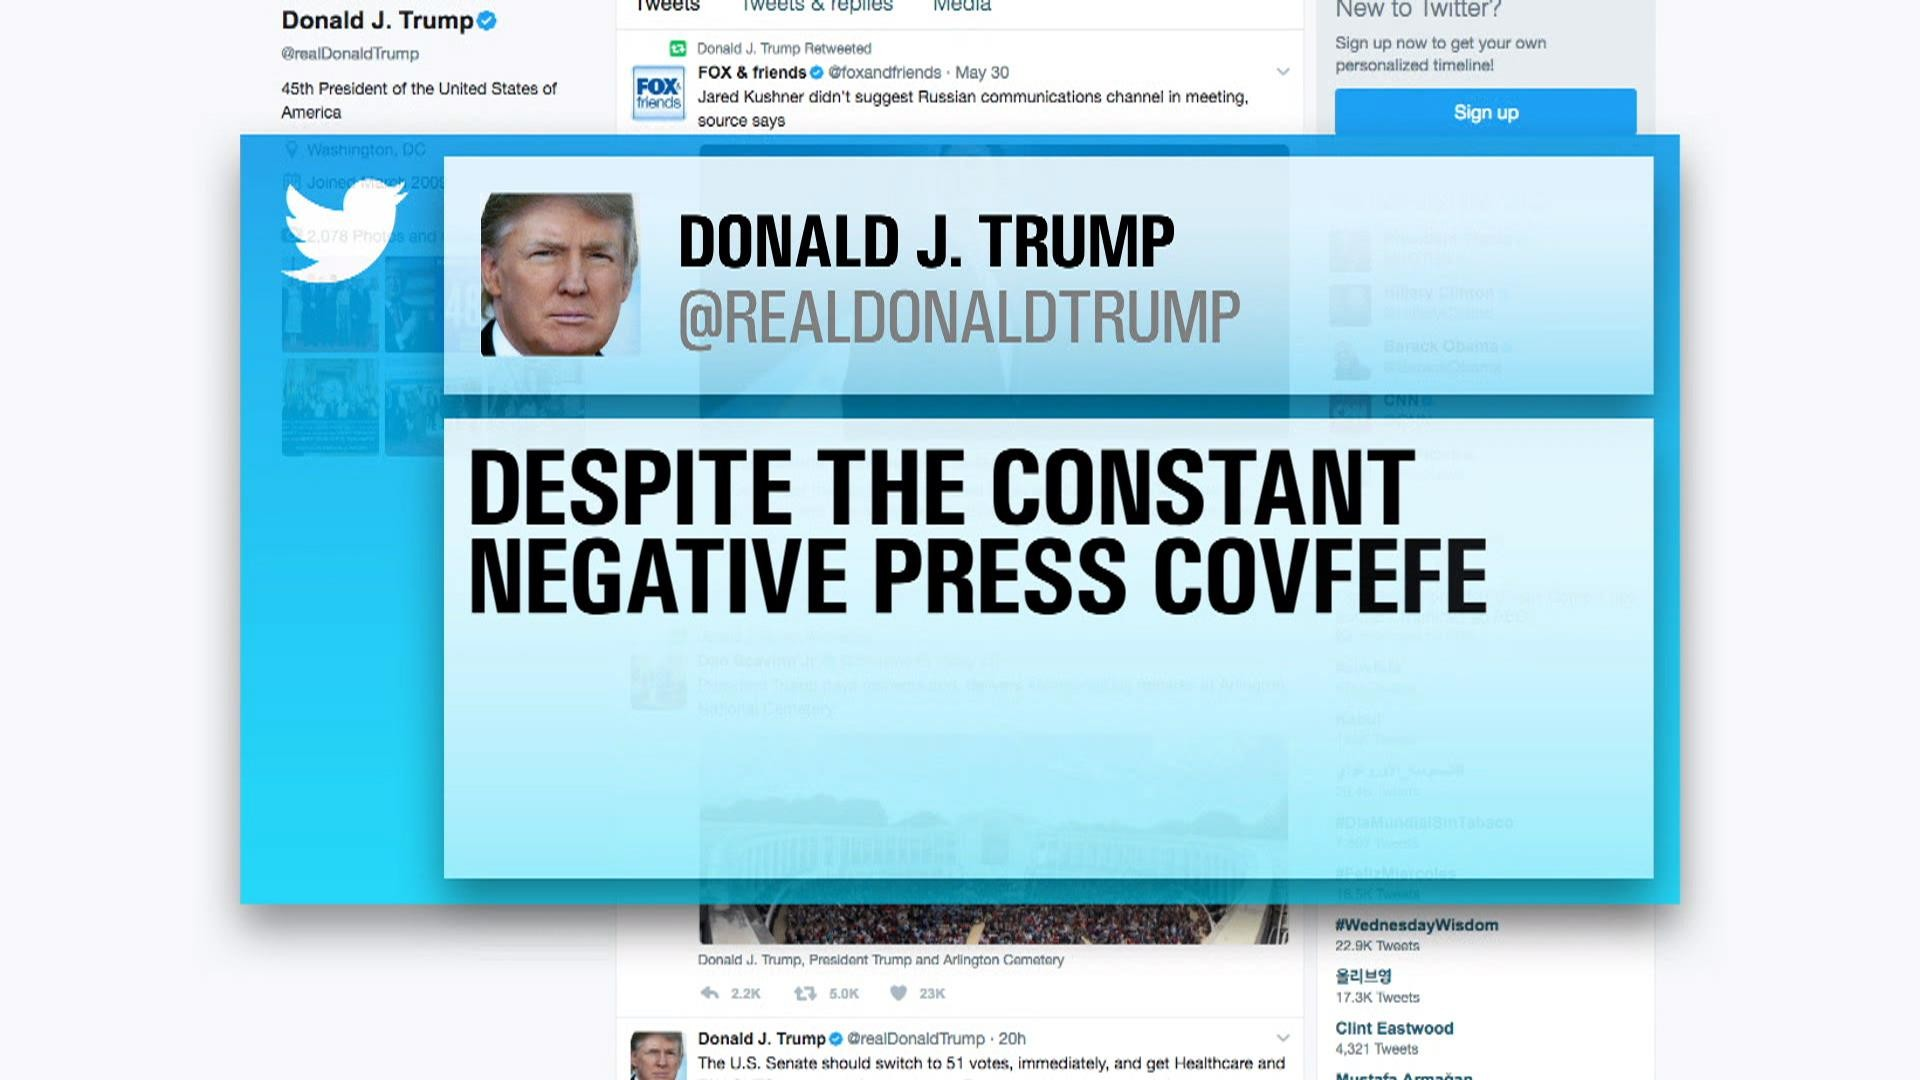 Trump's mystery 'covfefe' tweet sparks confusion: What does it mean? – NBC  News